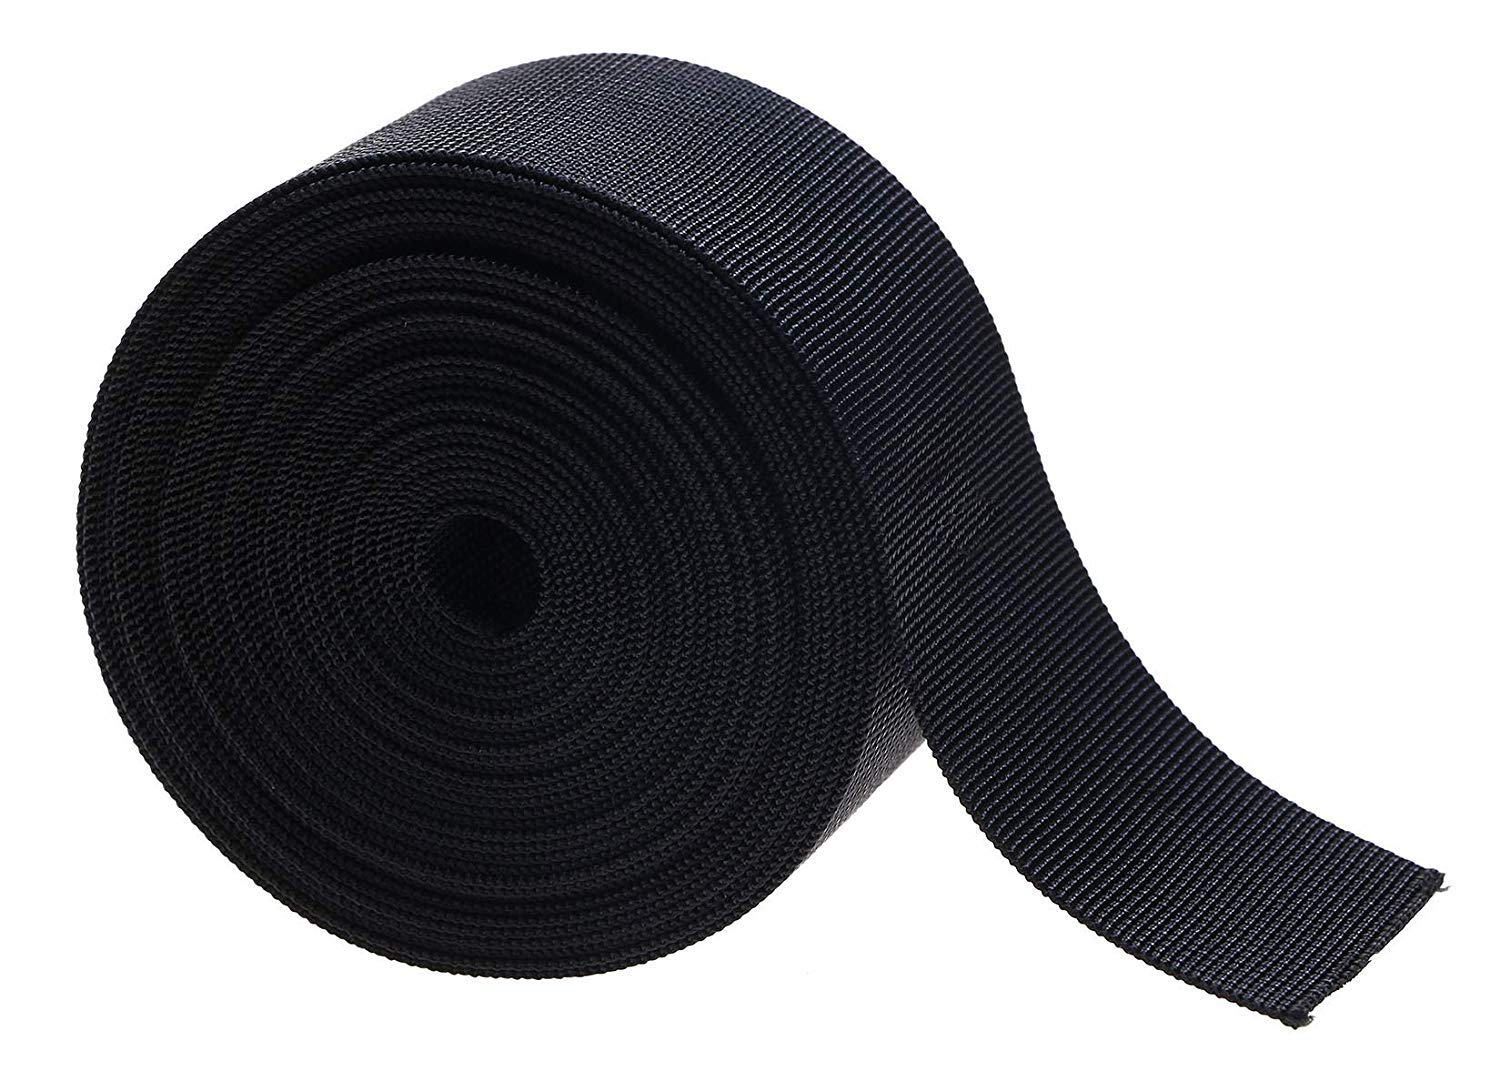 2 inch Webbing Fasteners Nylon Webbing Straps Sling for Belts Buckles Bags Lawn Chair Hammocks Towing DIY Making Luggage Strap Backpack Repairing Dog Leashes Pet Collar 10Yards (2 inch, Black)